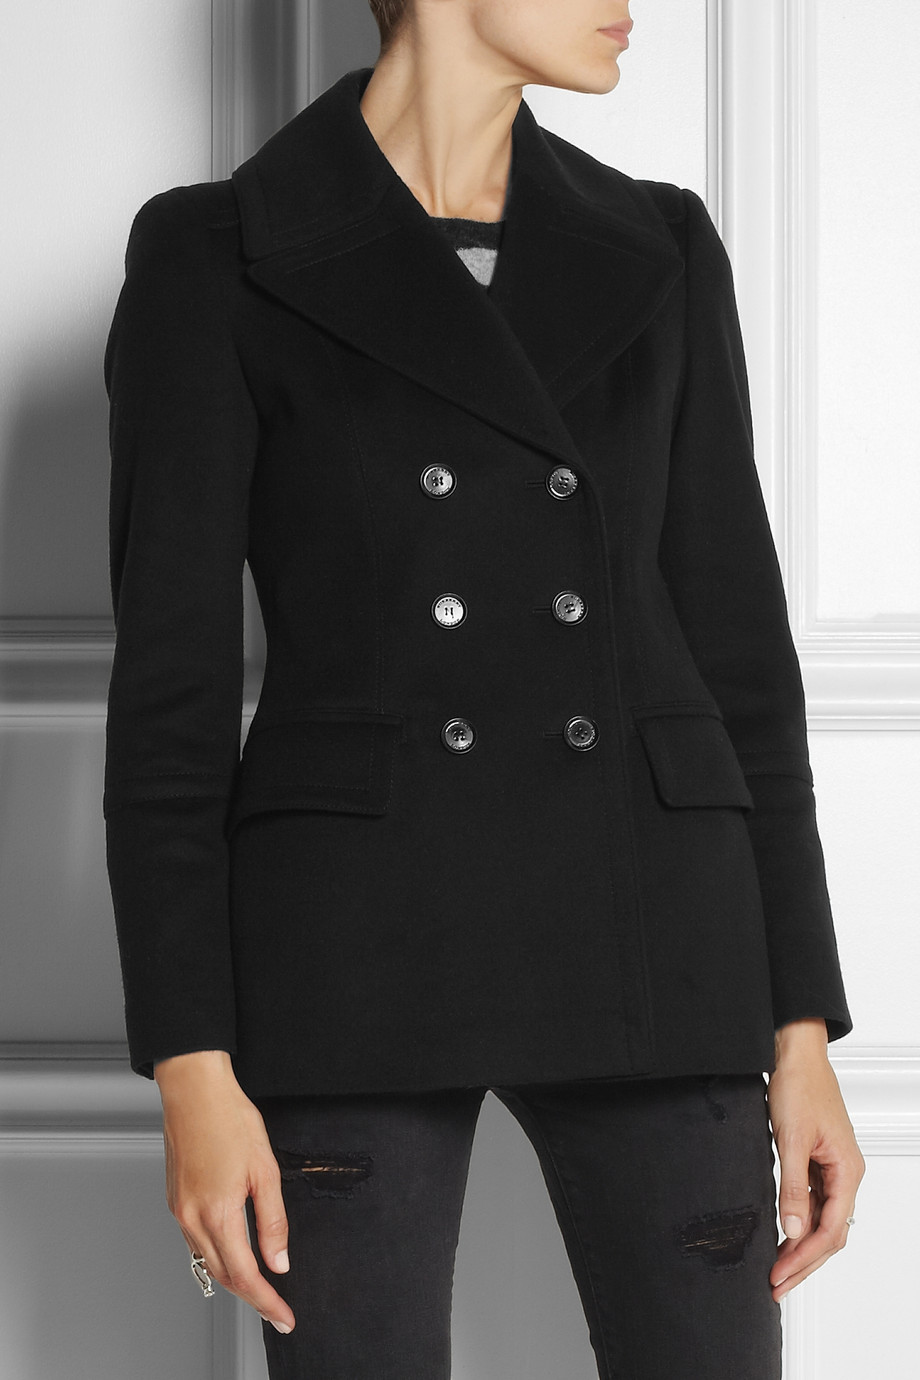 Burberry Double-breasted Wool and Cashmere-blend Pea-coat in Black